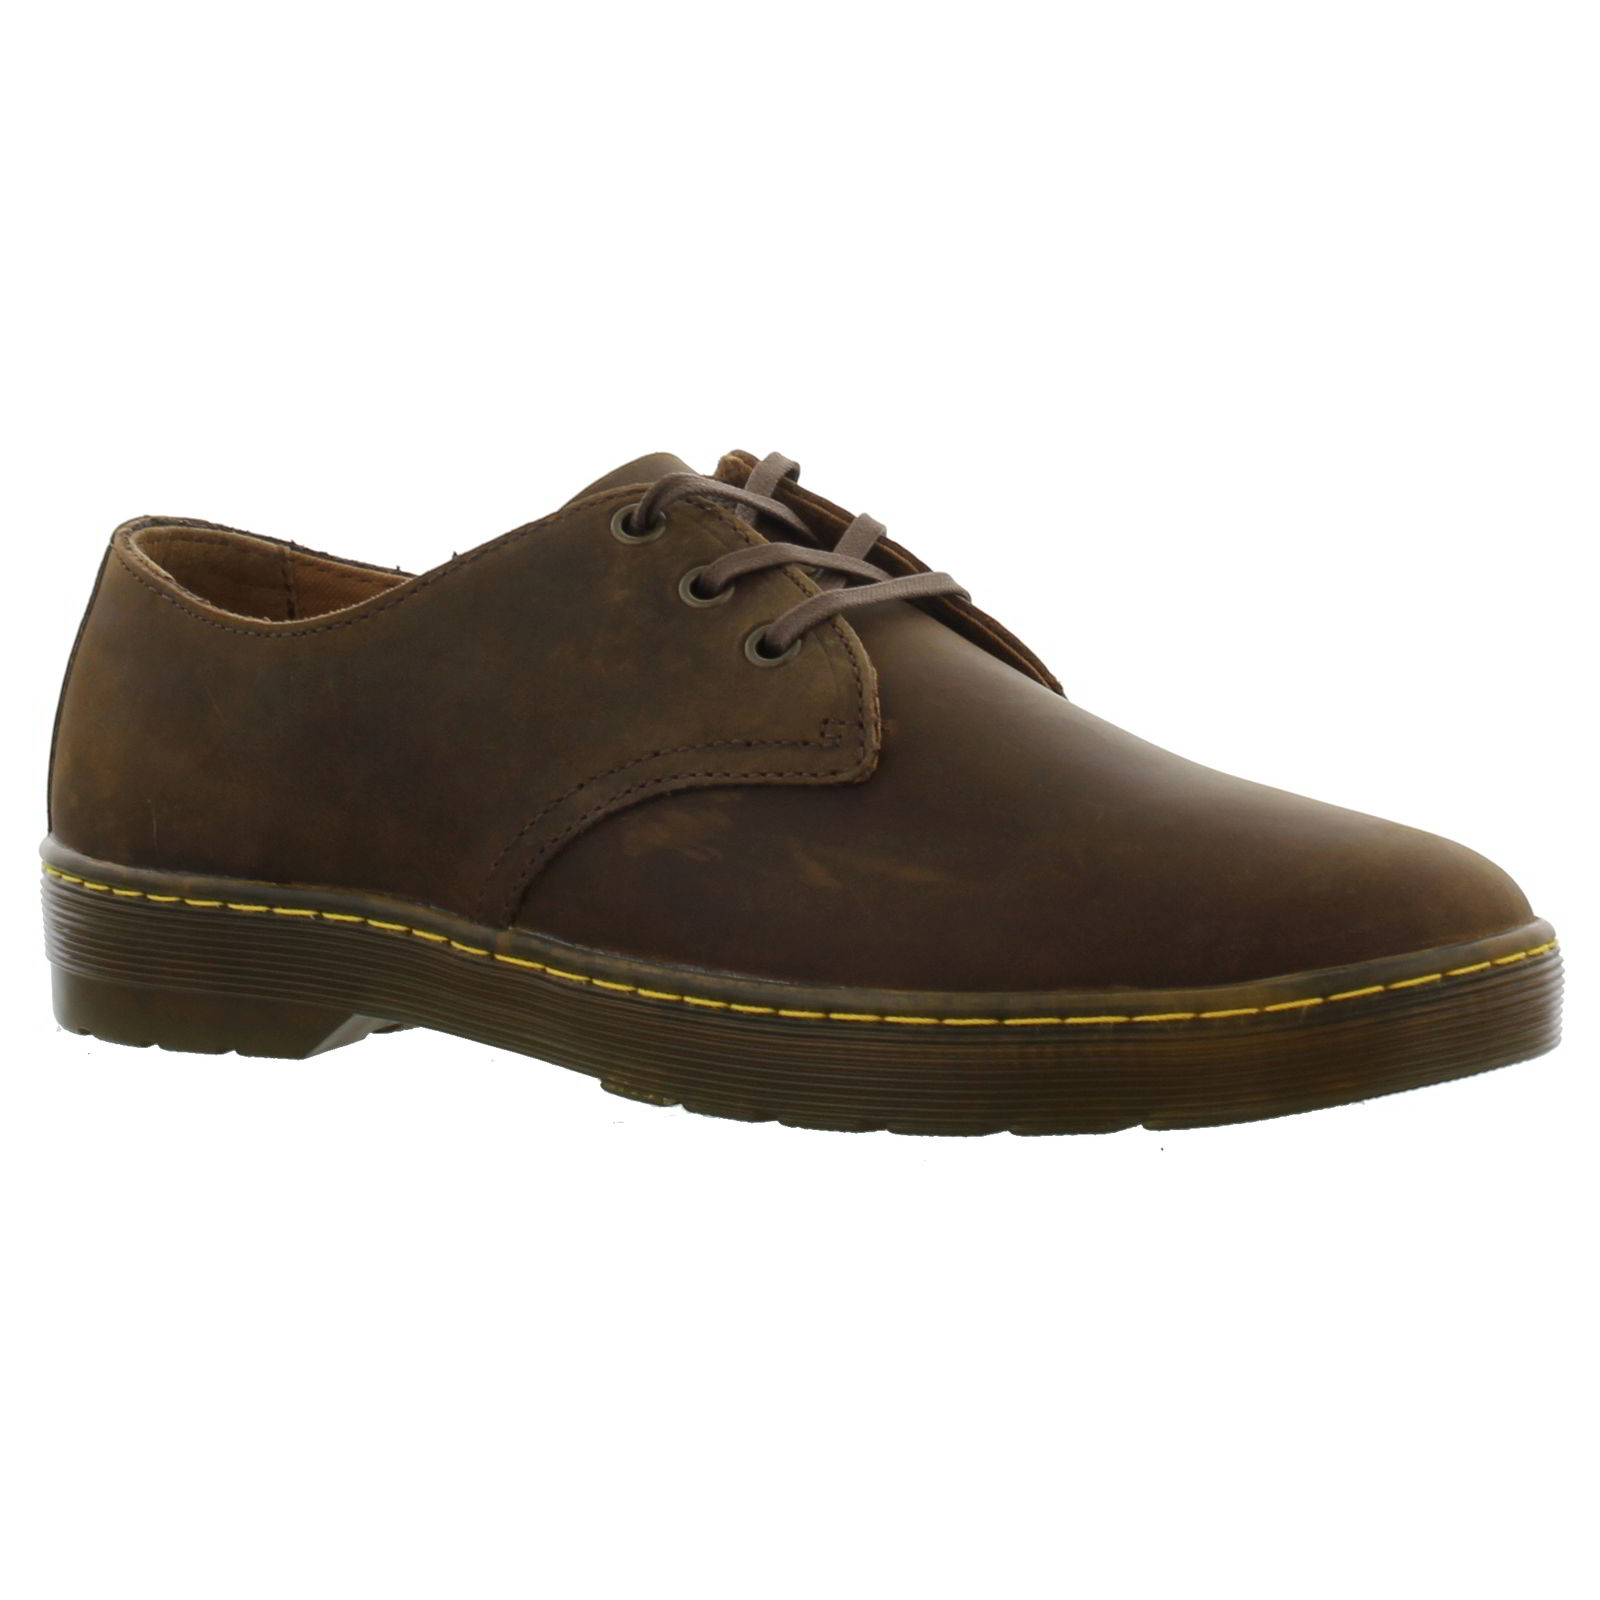 Dr Martens Coronado Mens Leather Lace Up Shoes Size